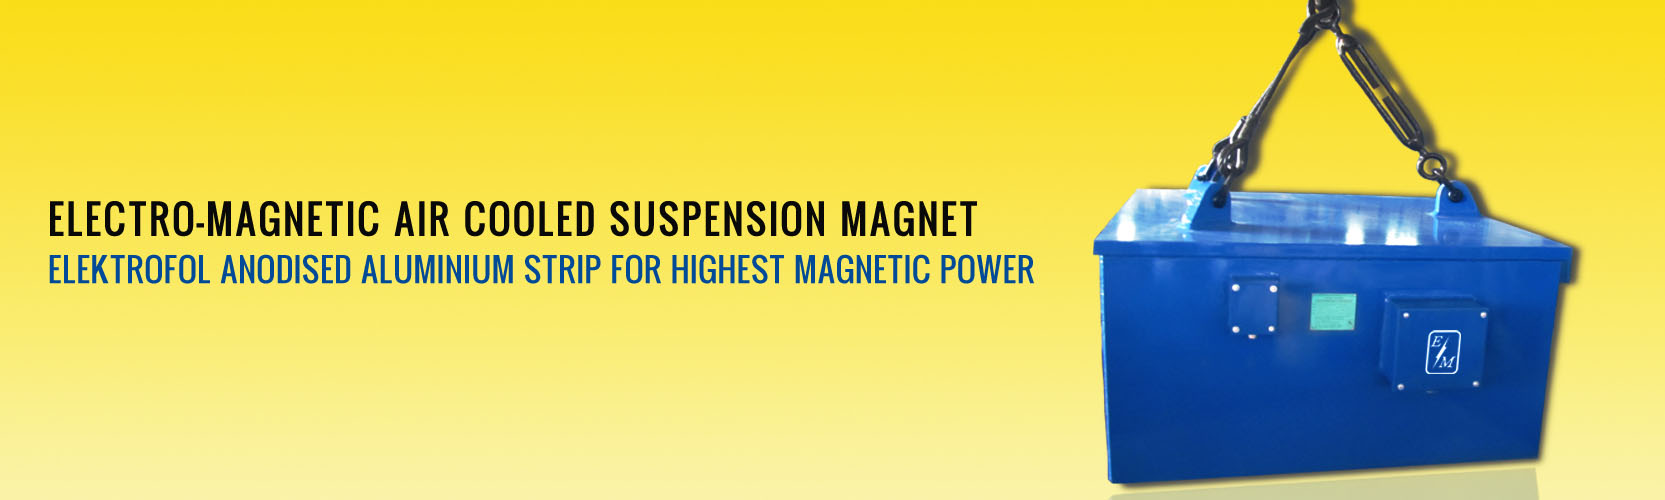 Suspension_Magnet_HDbanner_1665x500